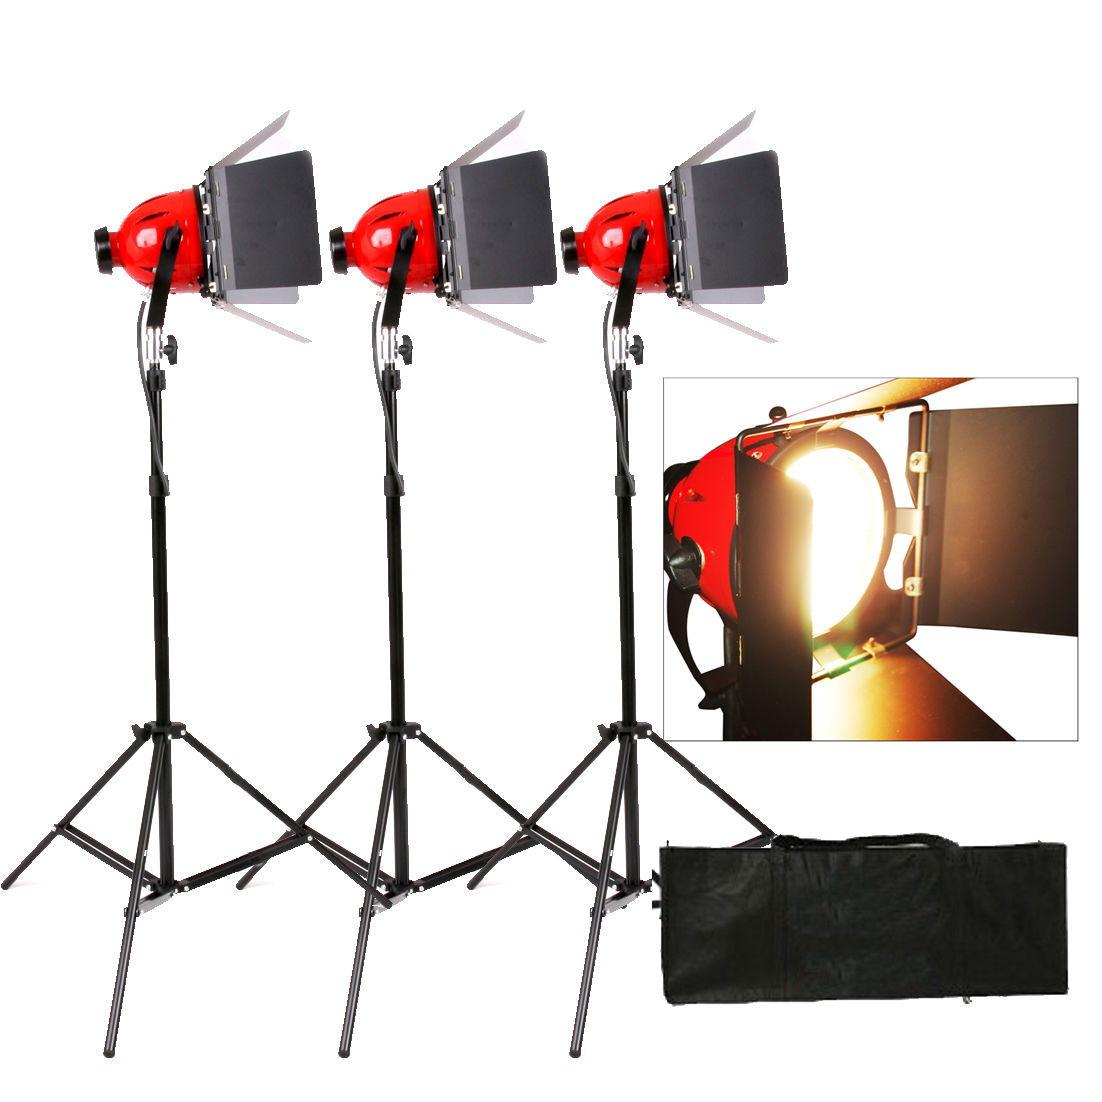 Red Head Open Face lempos 800W 3 vnt